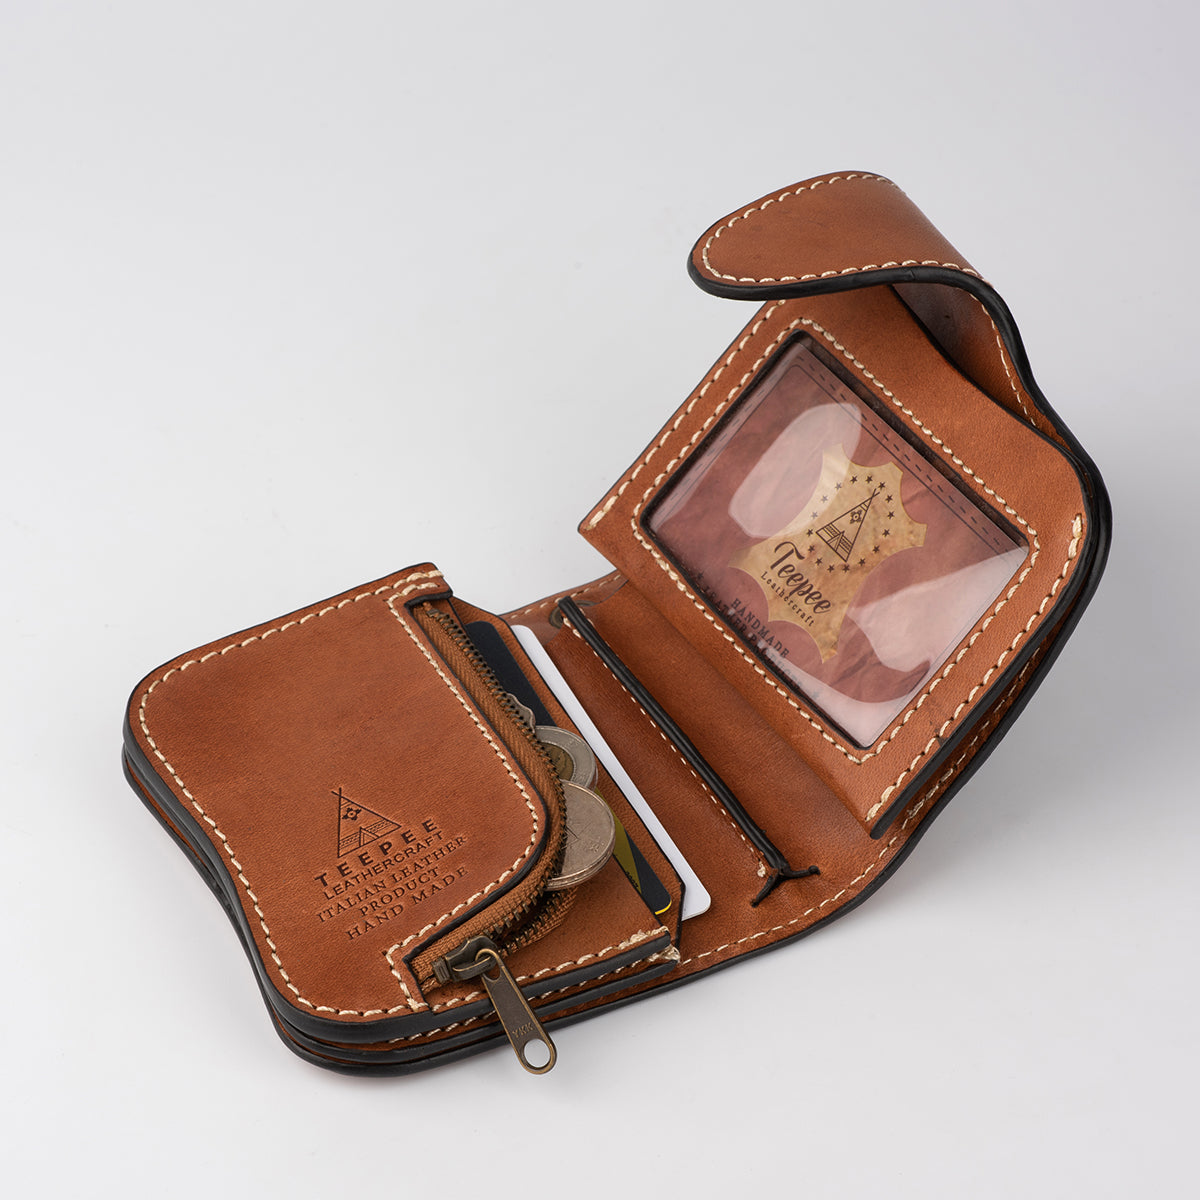 Ostrich foot leather wallet